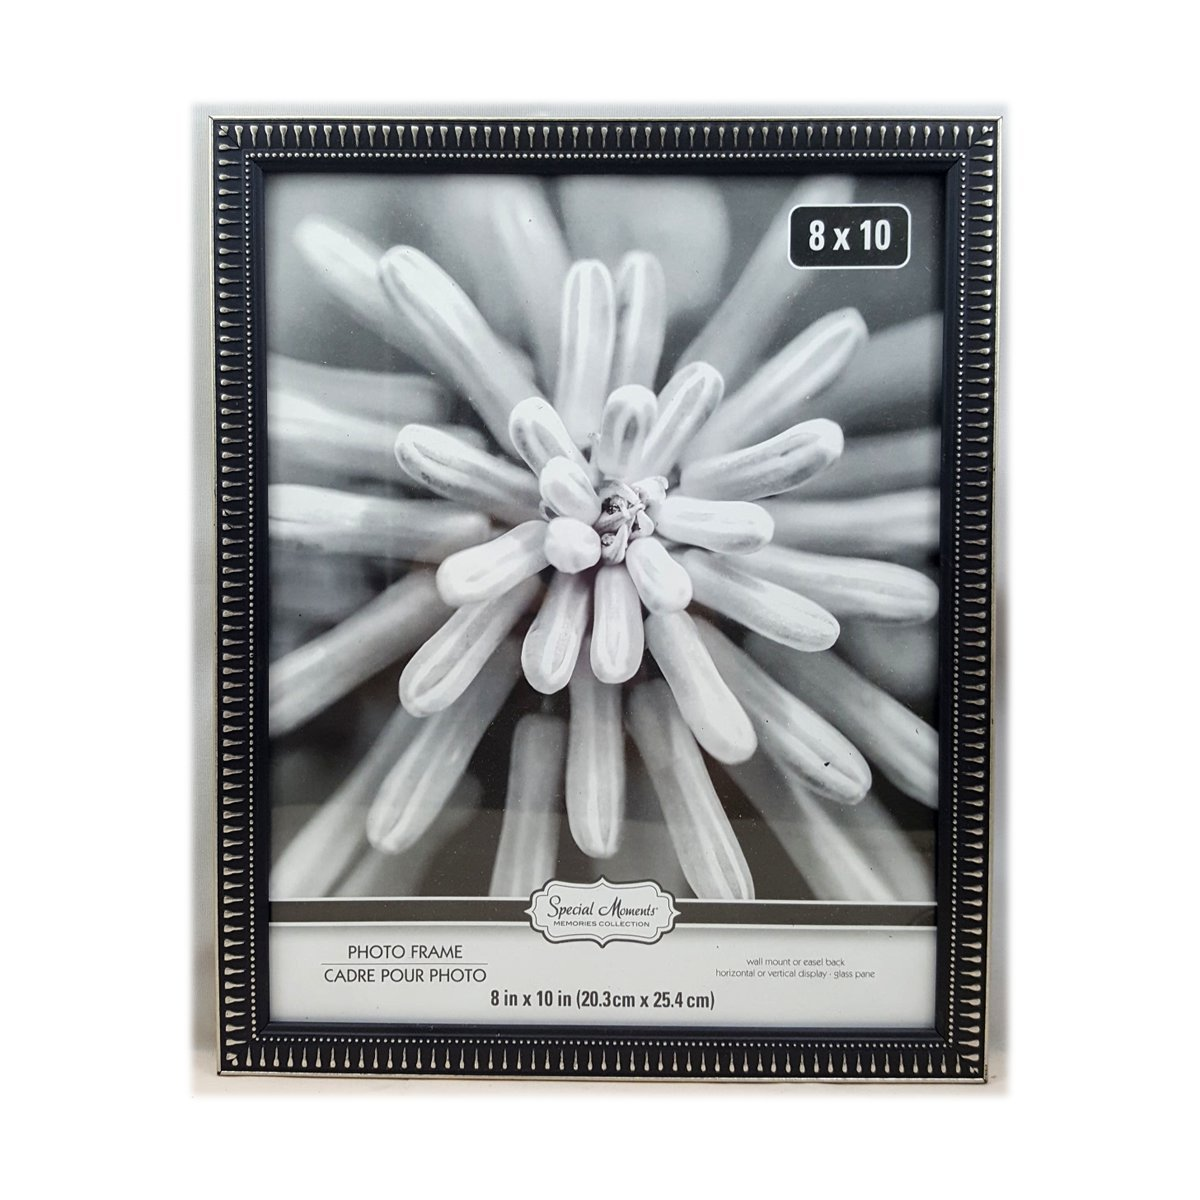 Amazoncom Special Moments Memories Collection Photo Frame 8 X10